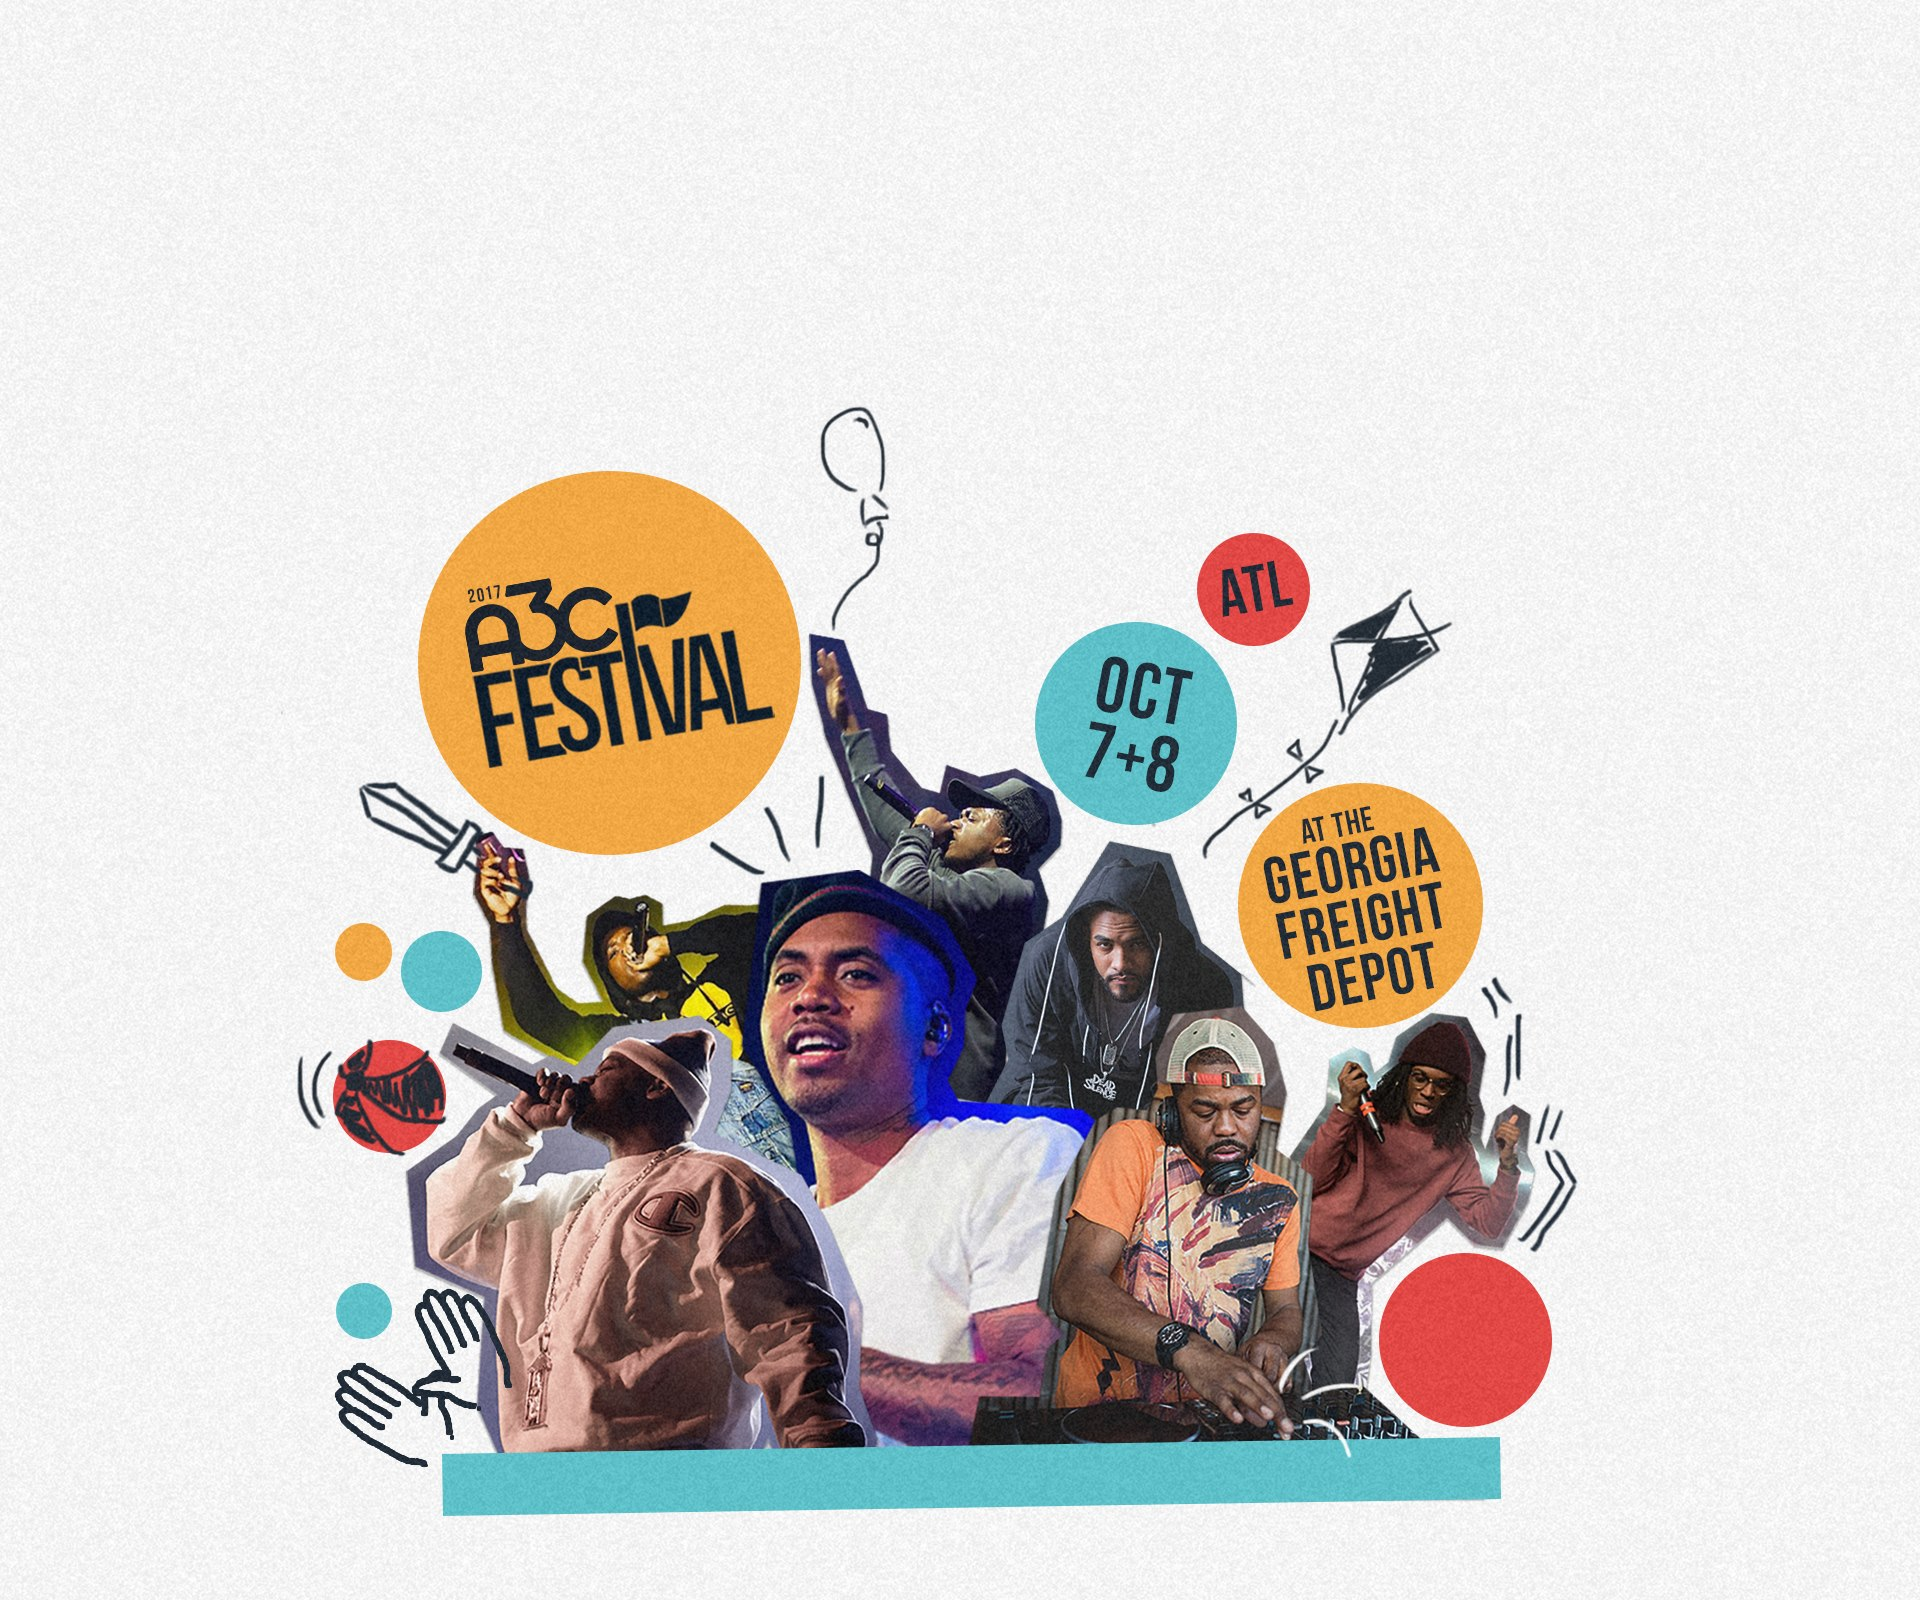 A3C returns with events throughout the week.